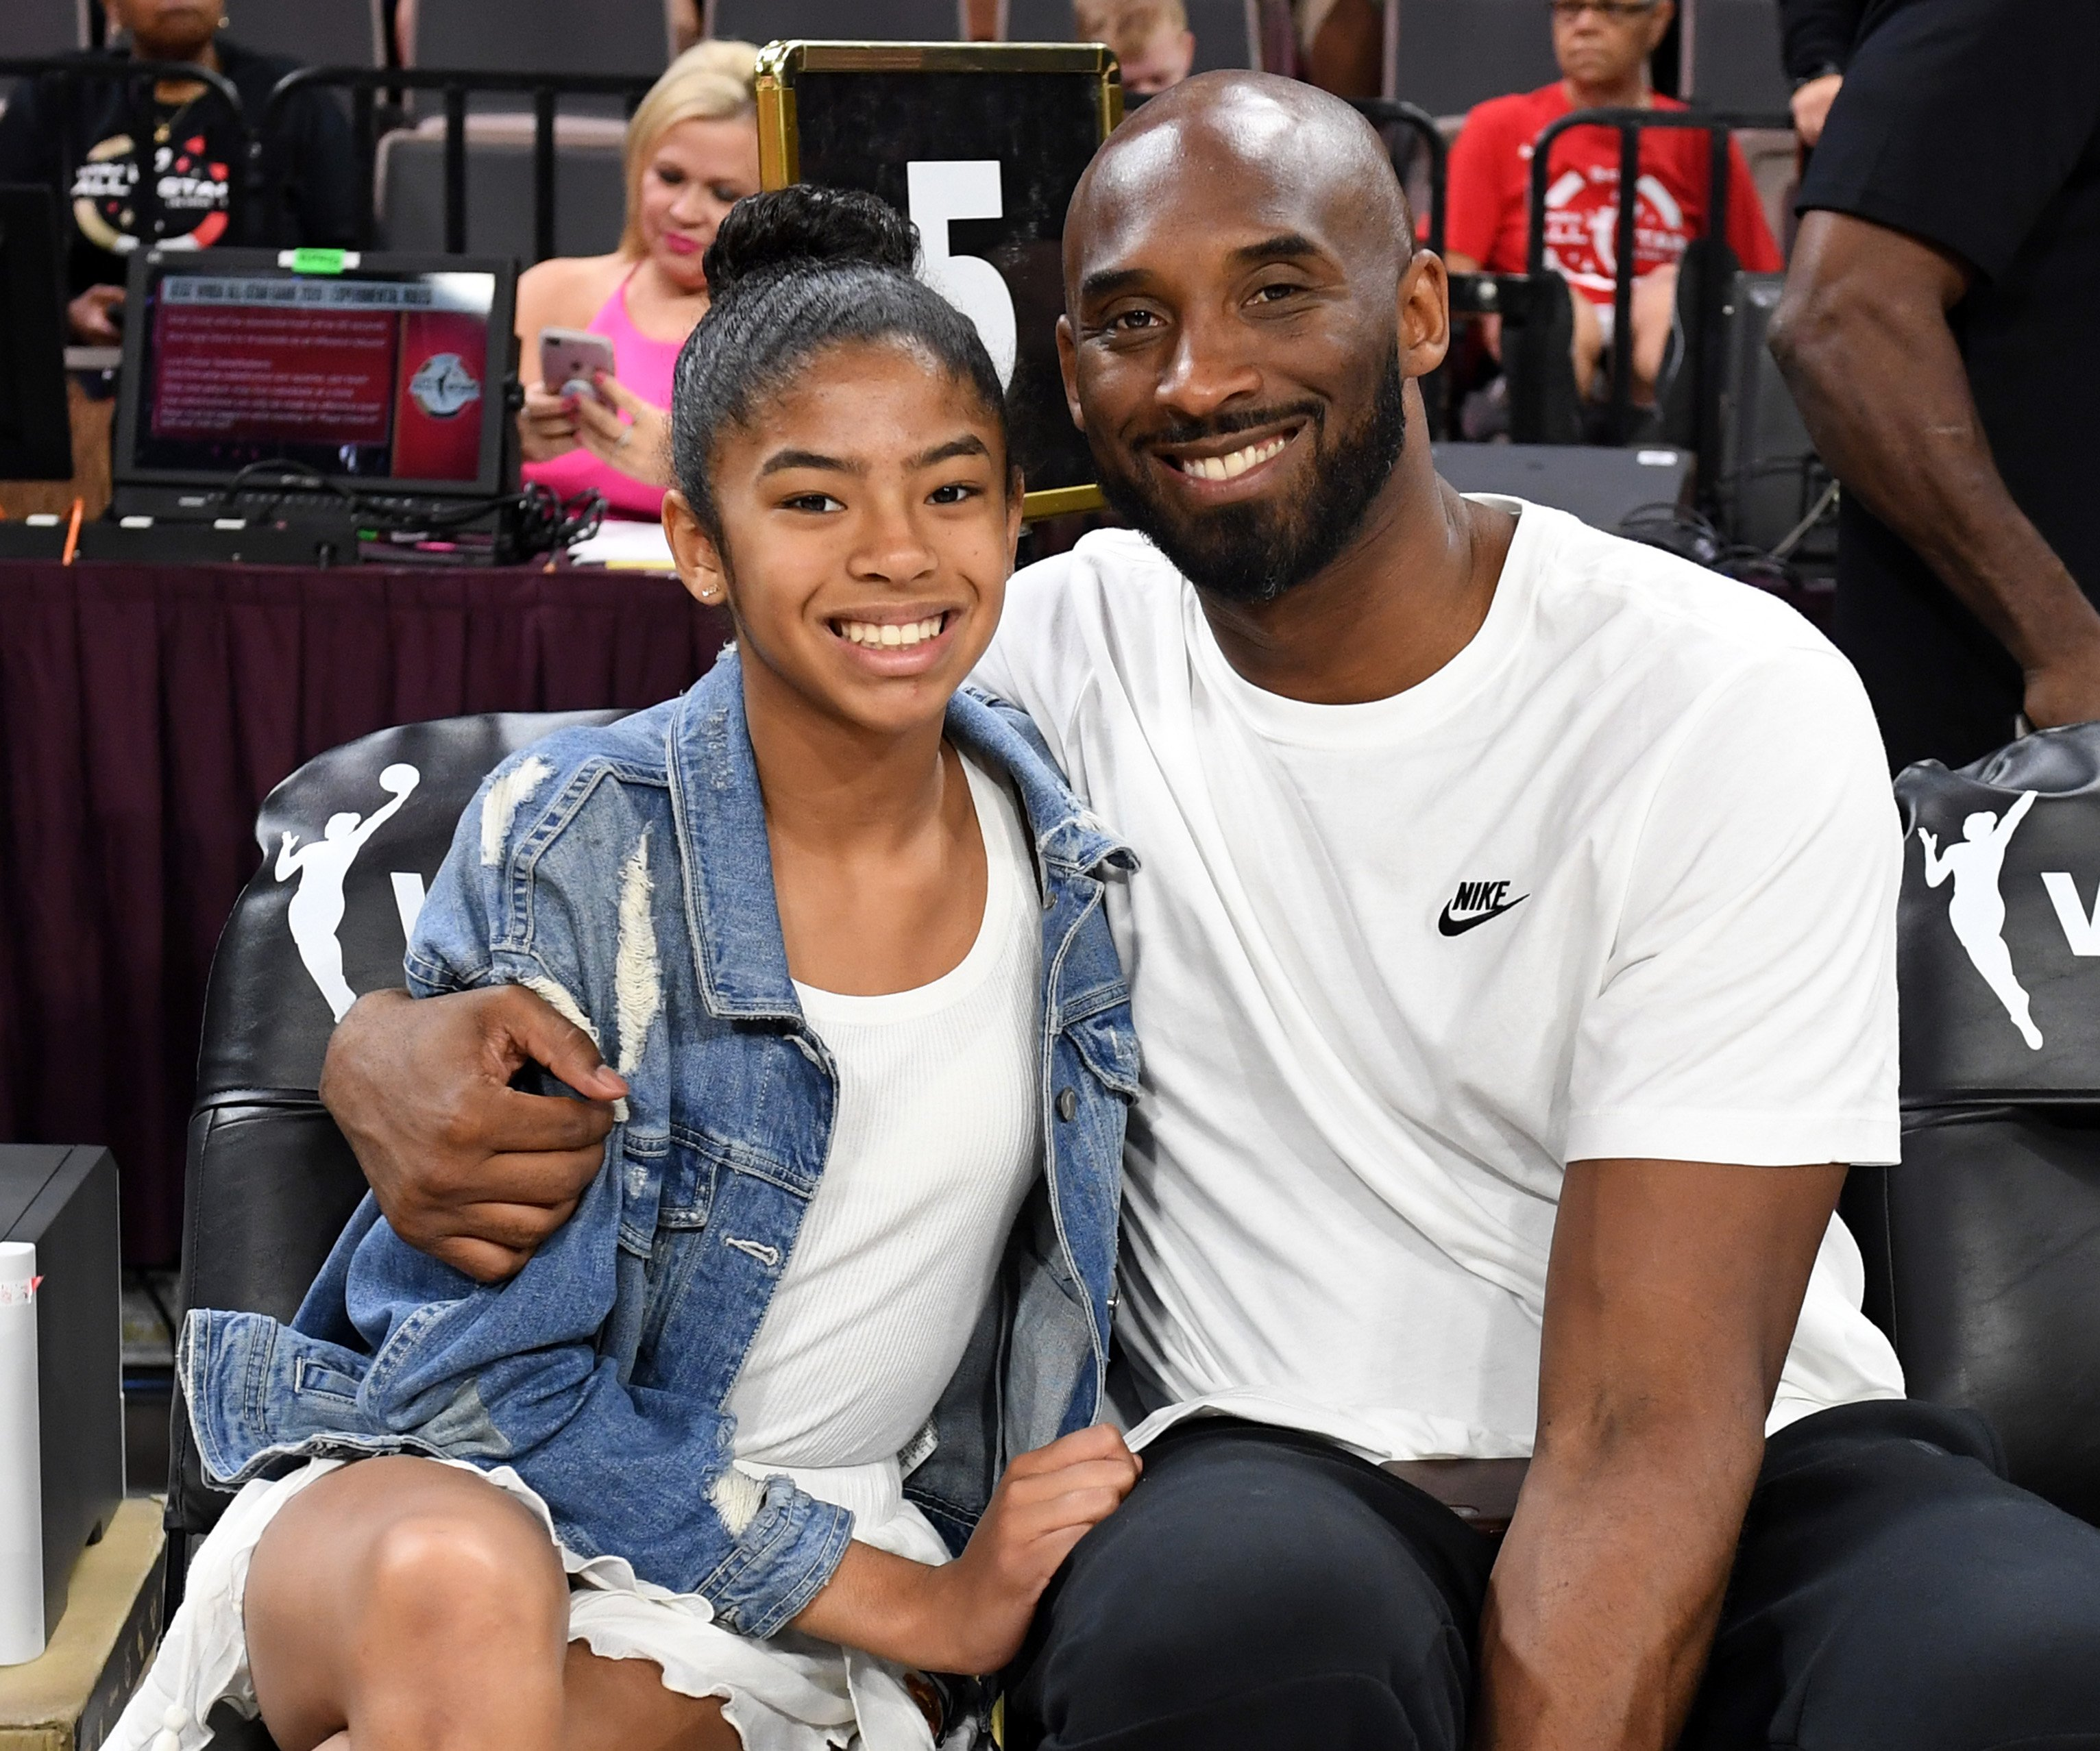 Gianna Bryant and Kobe Bryant at the WNBA All-Star Game 2019 on July 27, 2019 in Nevada | Photo: Getty Images